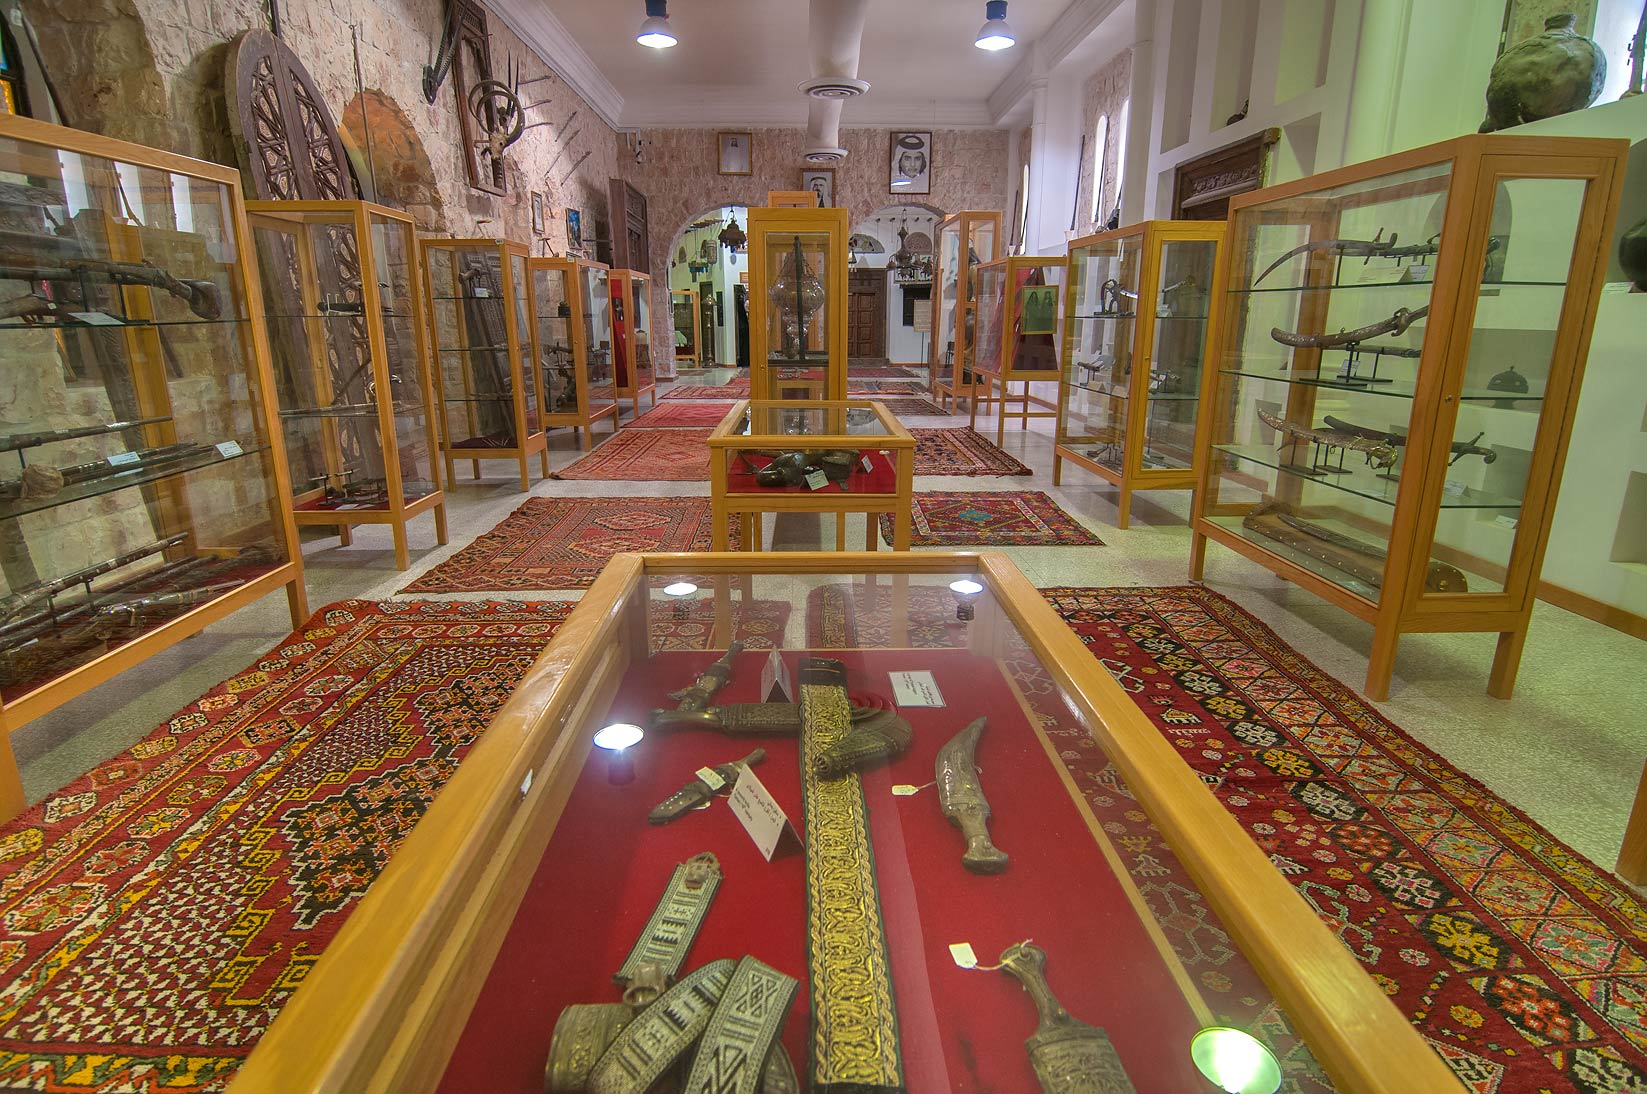 halls muslim The frequency by which muslims attend mosque services vary greatly  this desire for cleanliness extends to the prayer halls where shoes are disallowed to be worn .